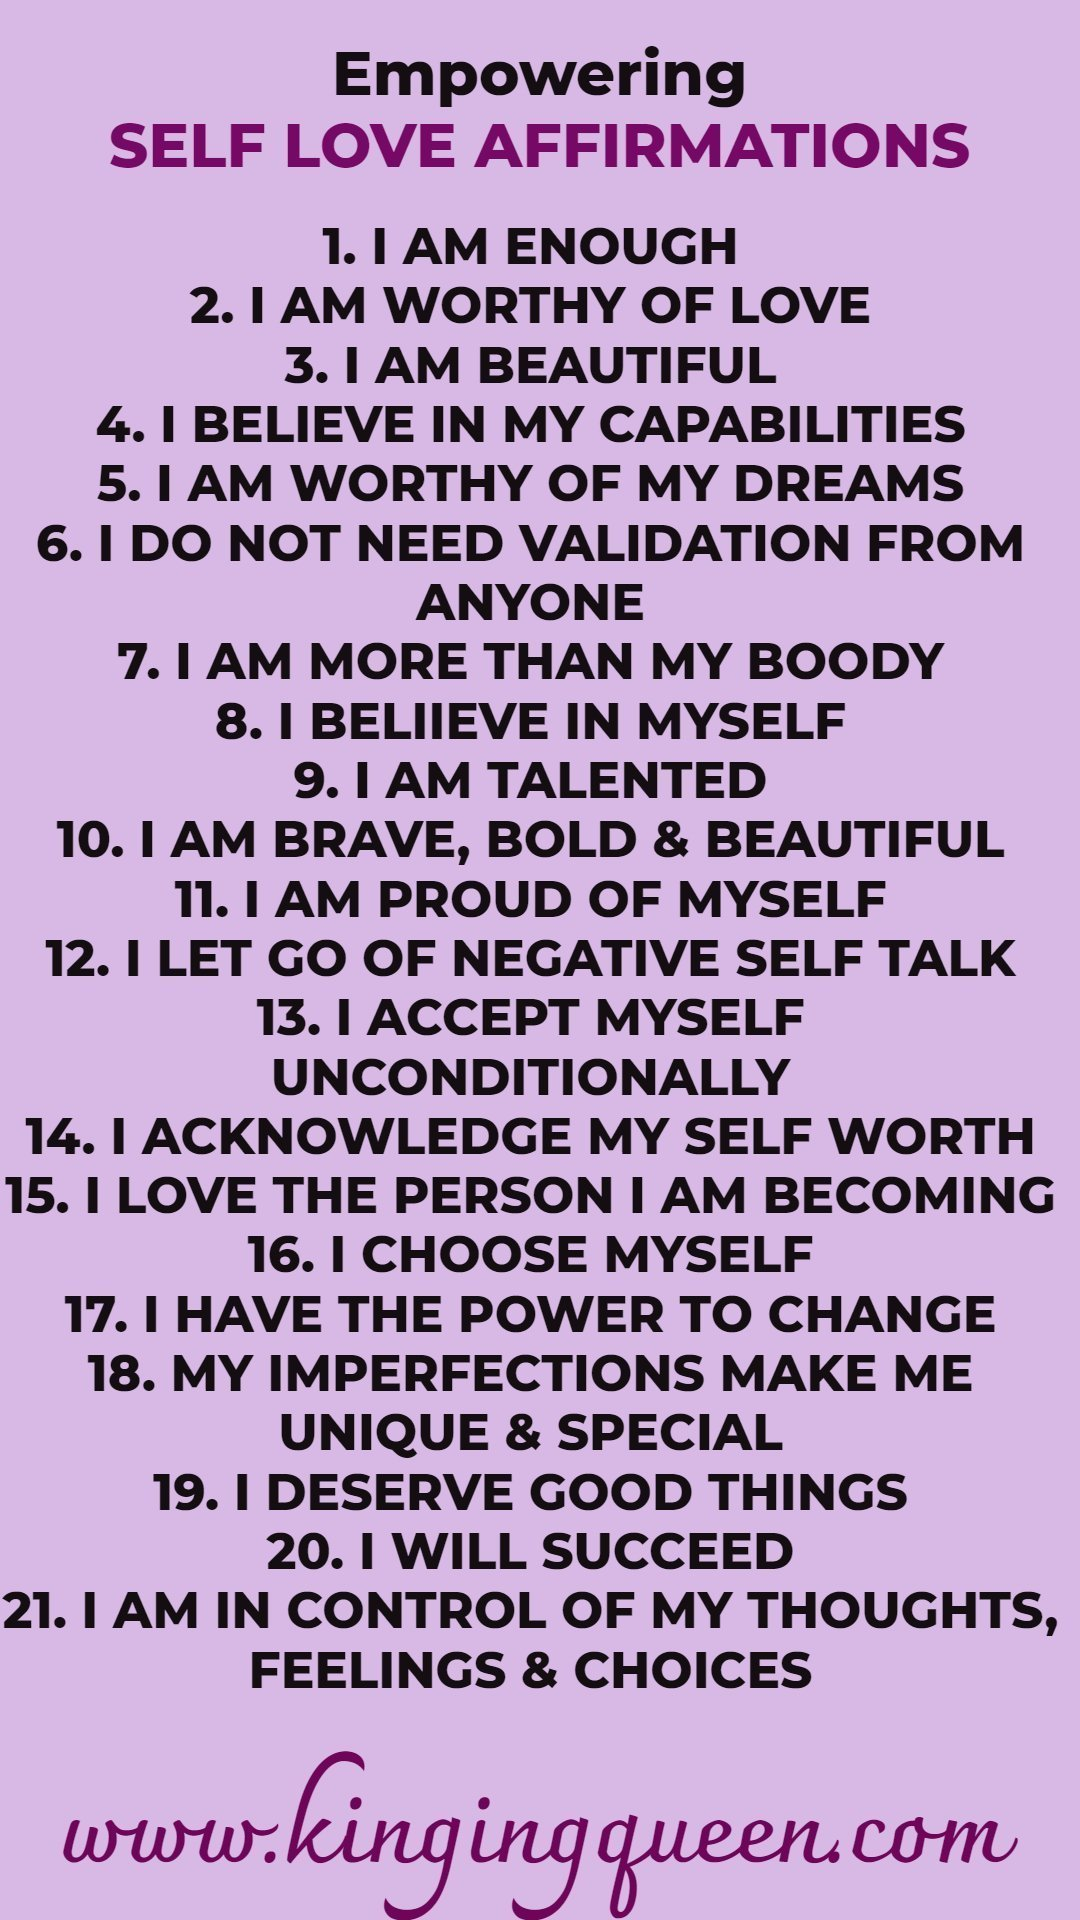 Graphic showing 21 Empowering Affirmations For Self Love